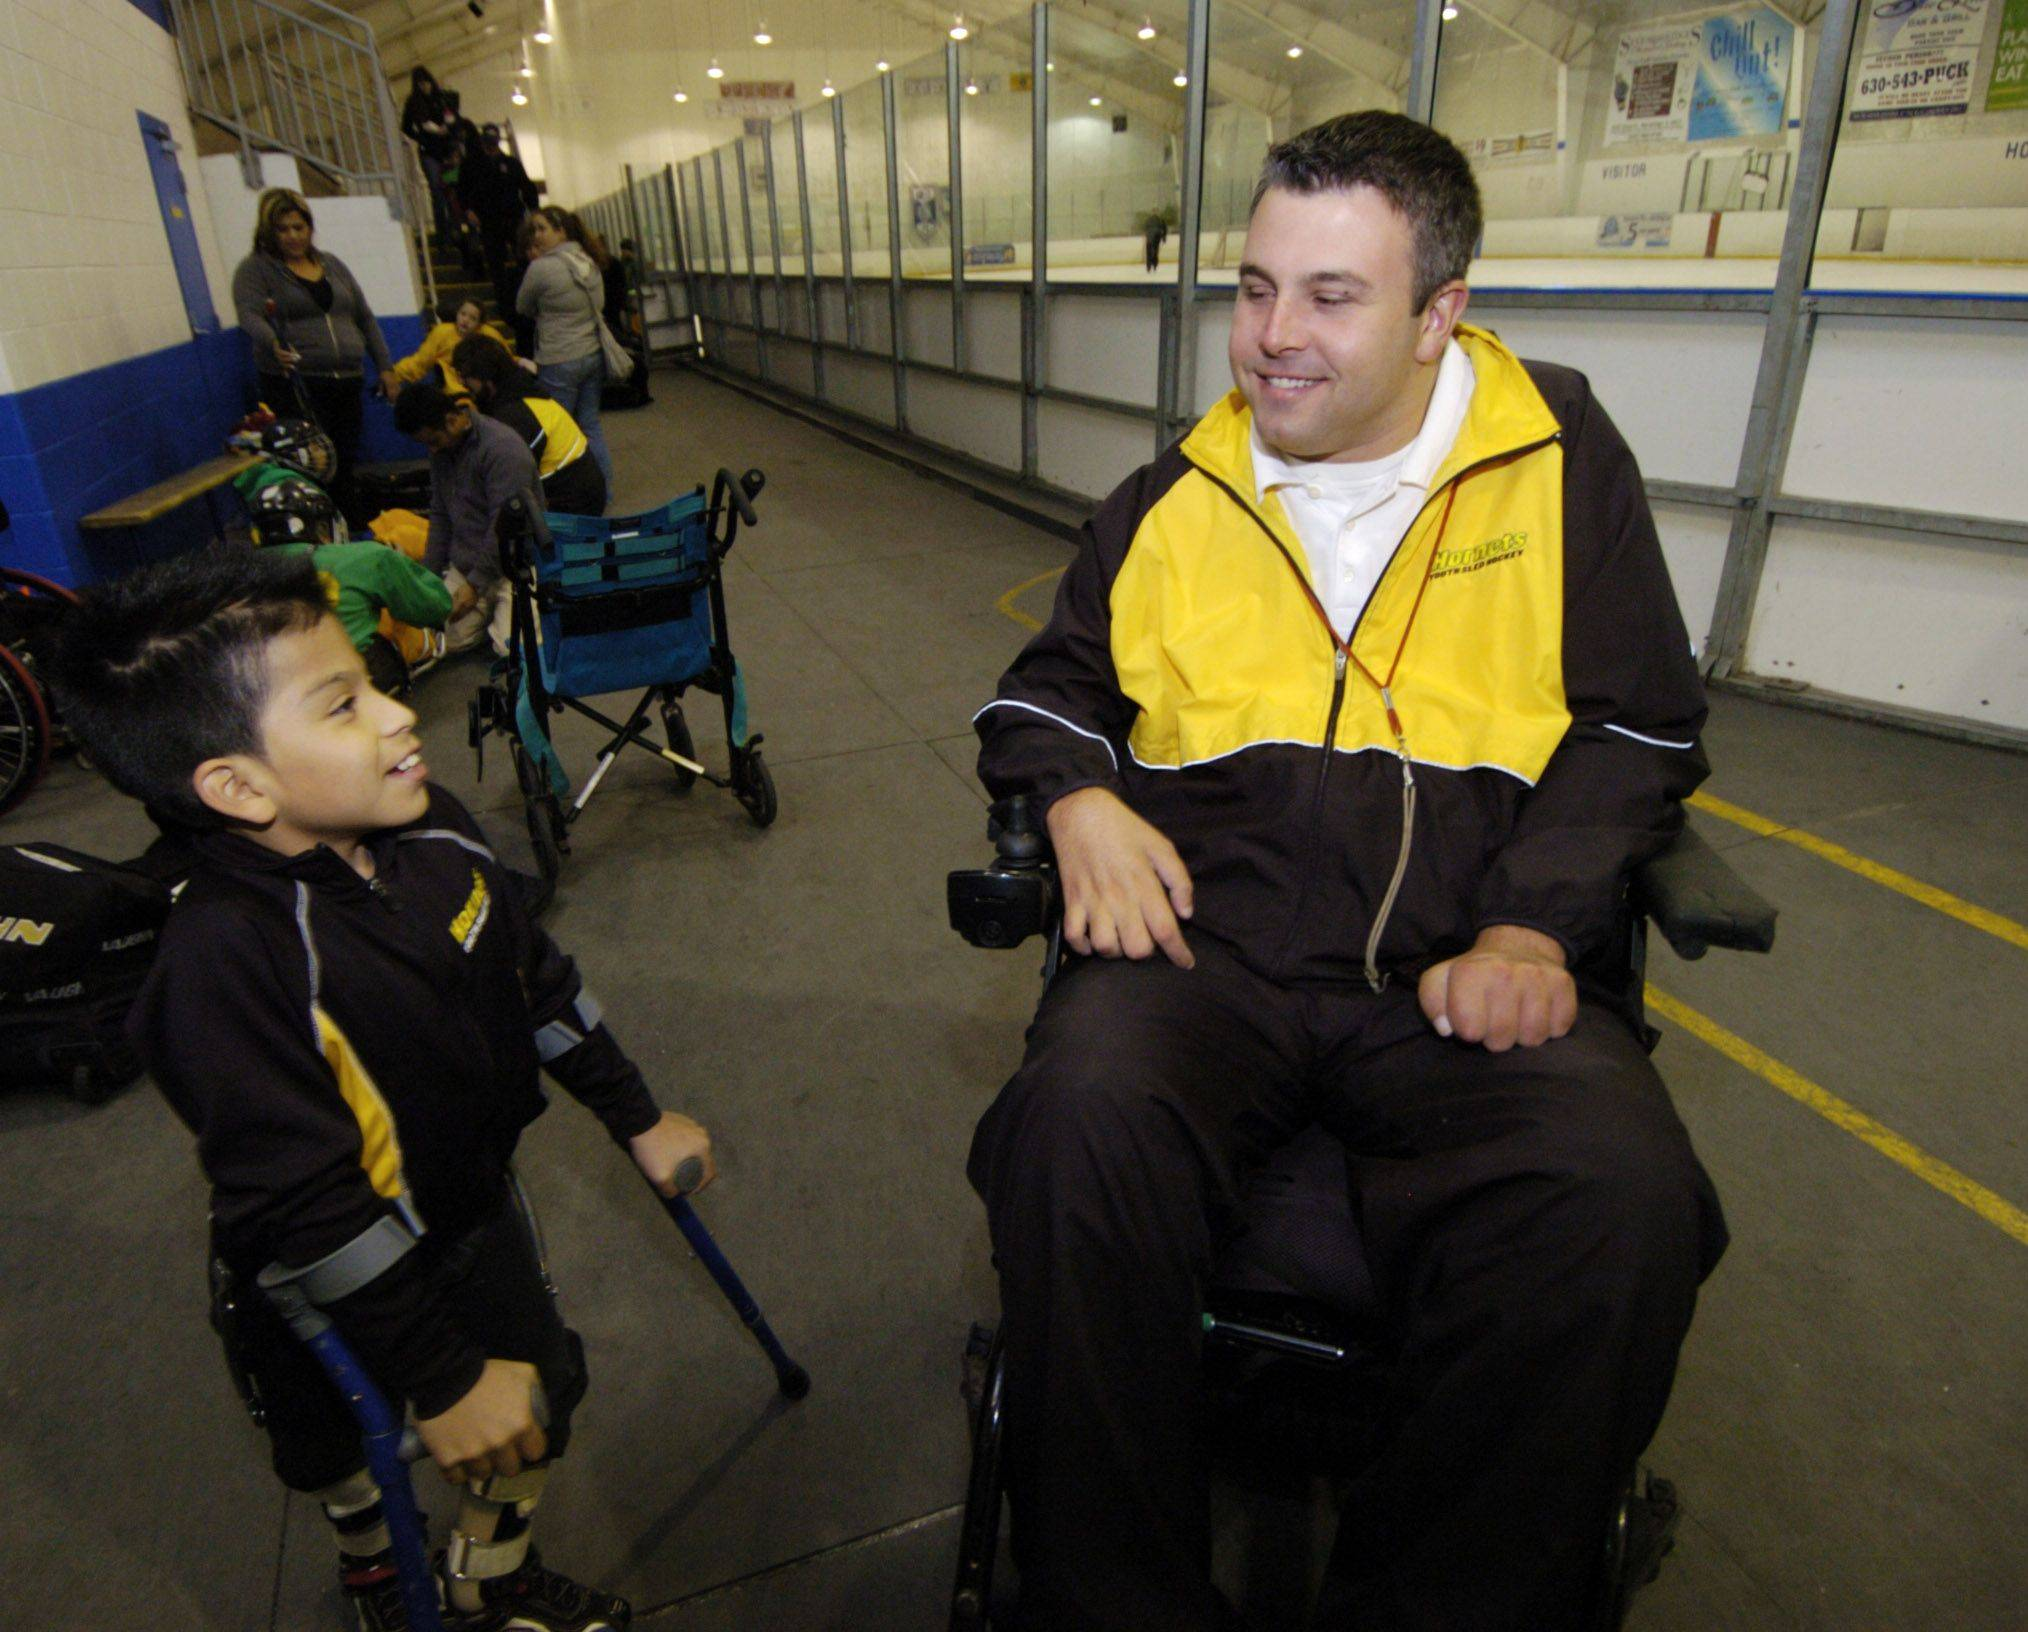 Disabled Mt. Prospect hockey leader celebrates 16 years in wheelchair